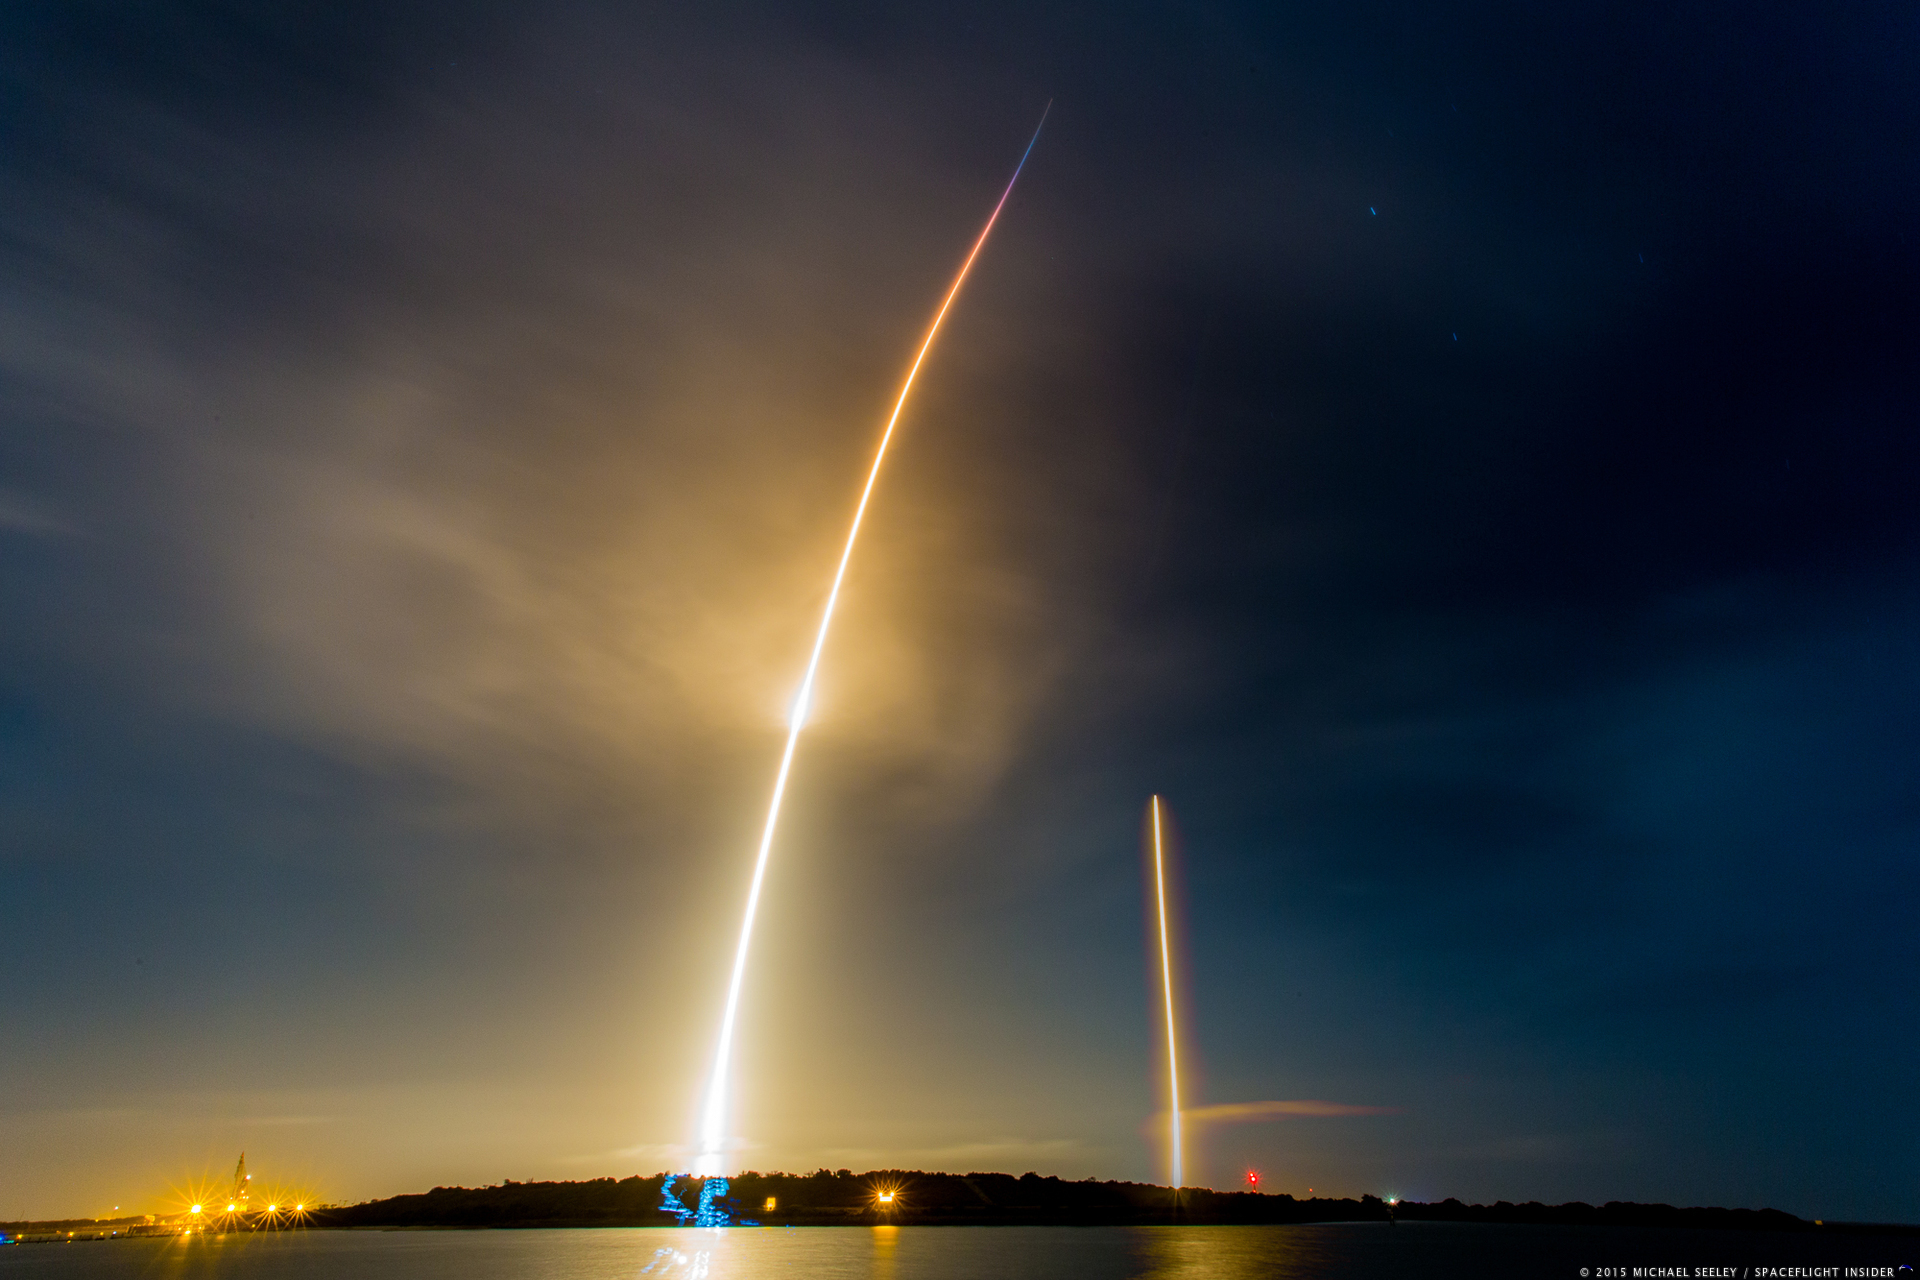 Launch and landing shot in one frame SpaceX Falcon 9 v1.2 with Orbcomm OG2 mission photo credit Michael Seeley / SpaceFlight Insider